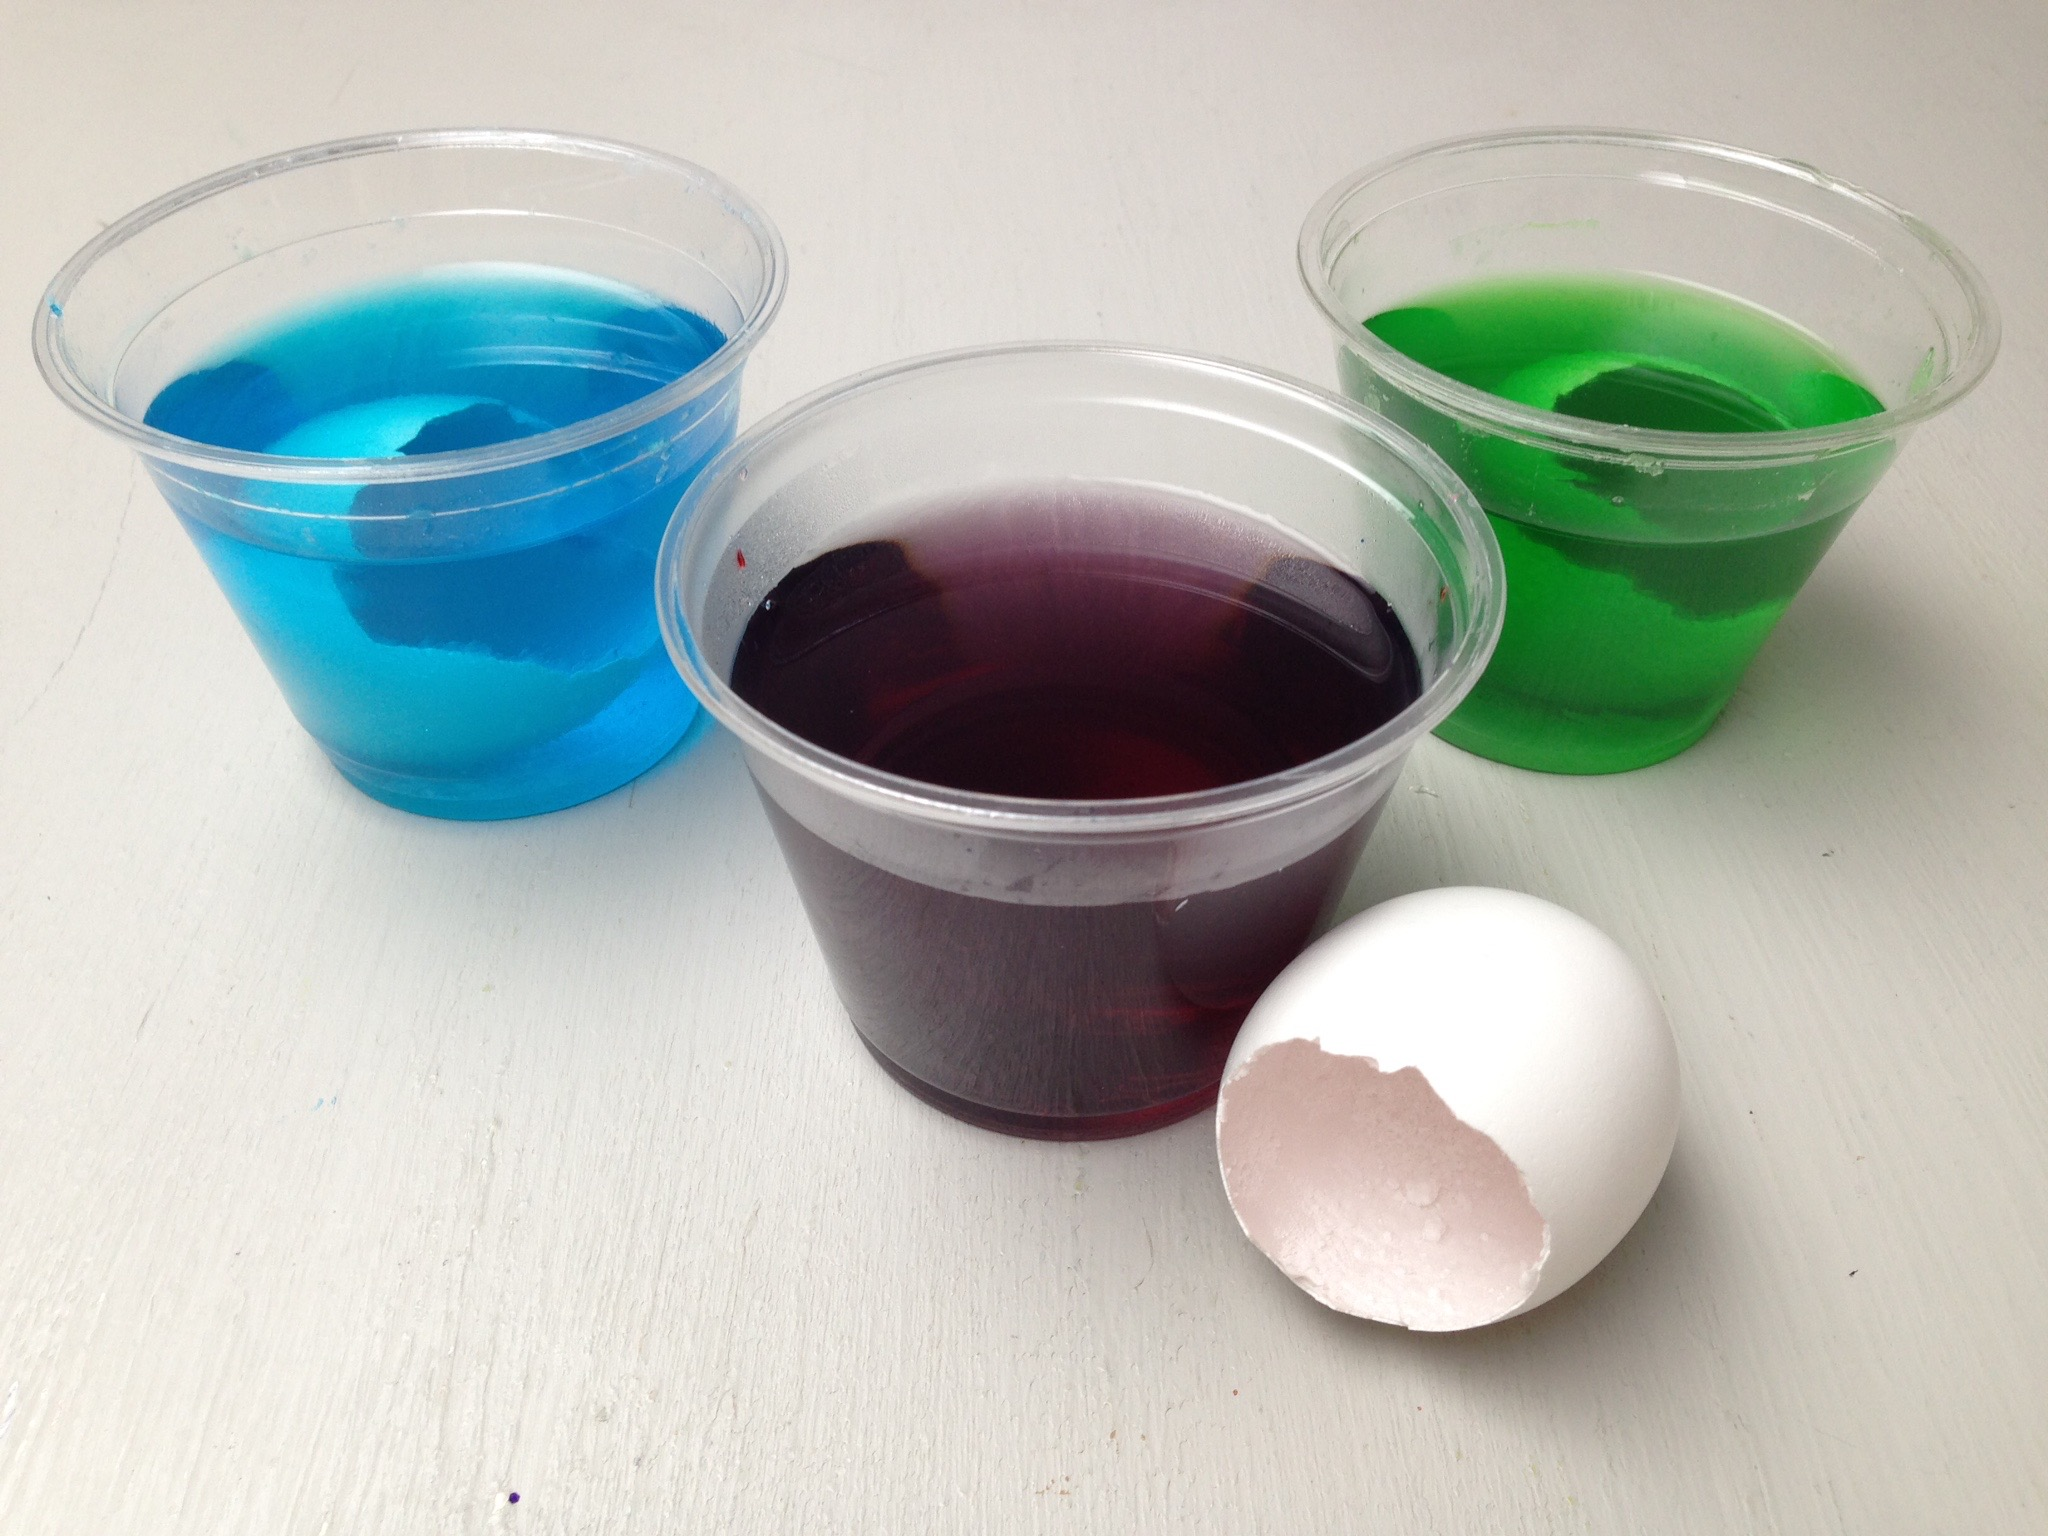 how to make egg geodes with borax